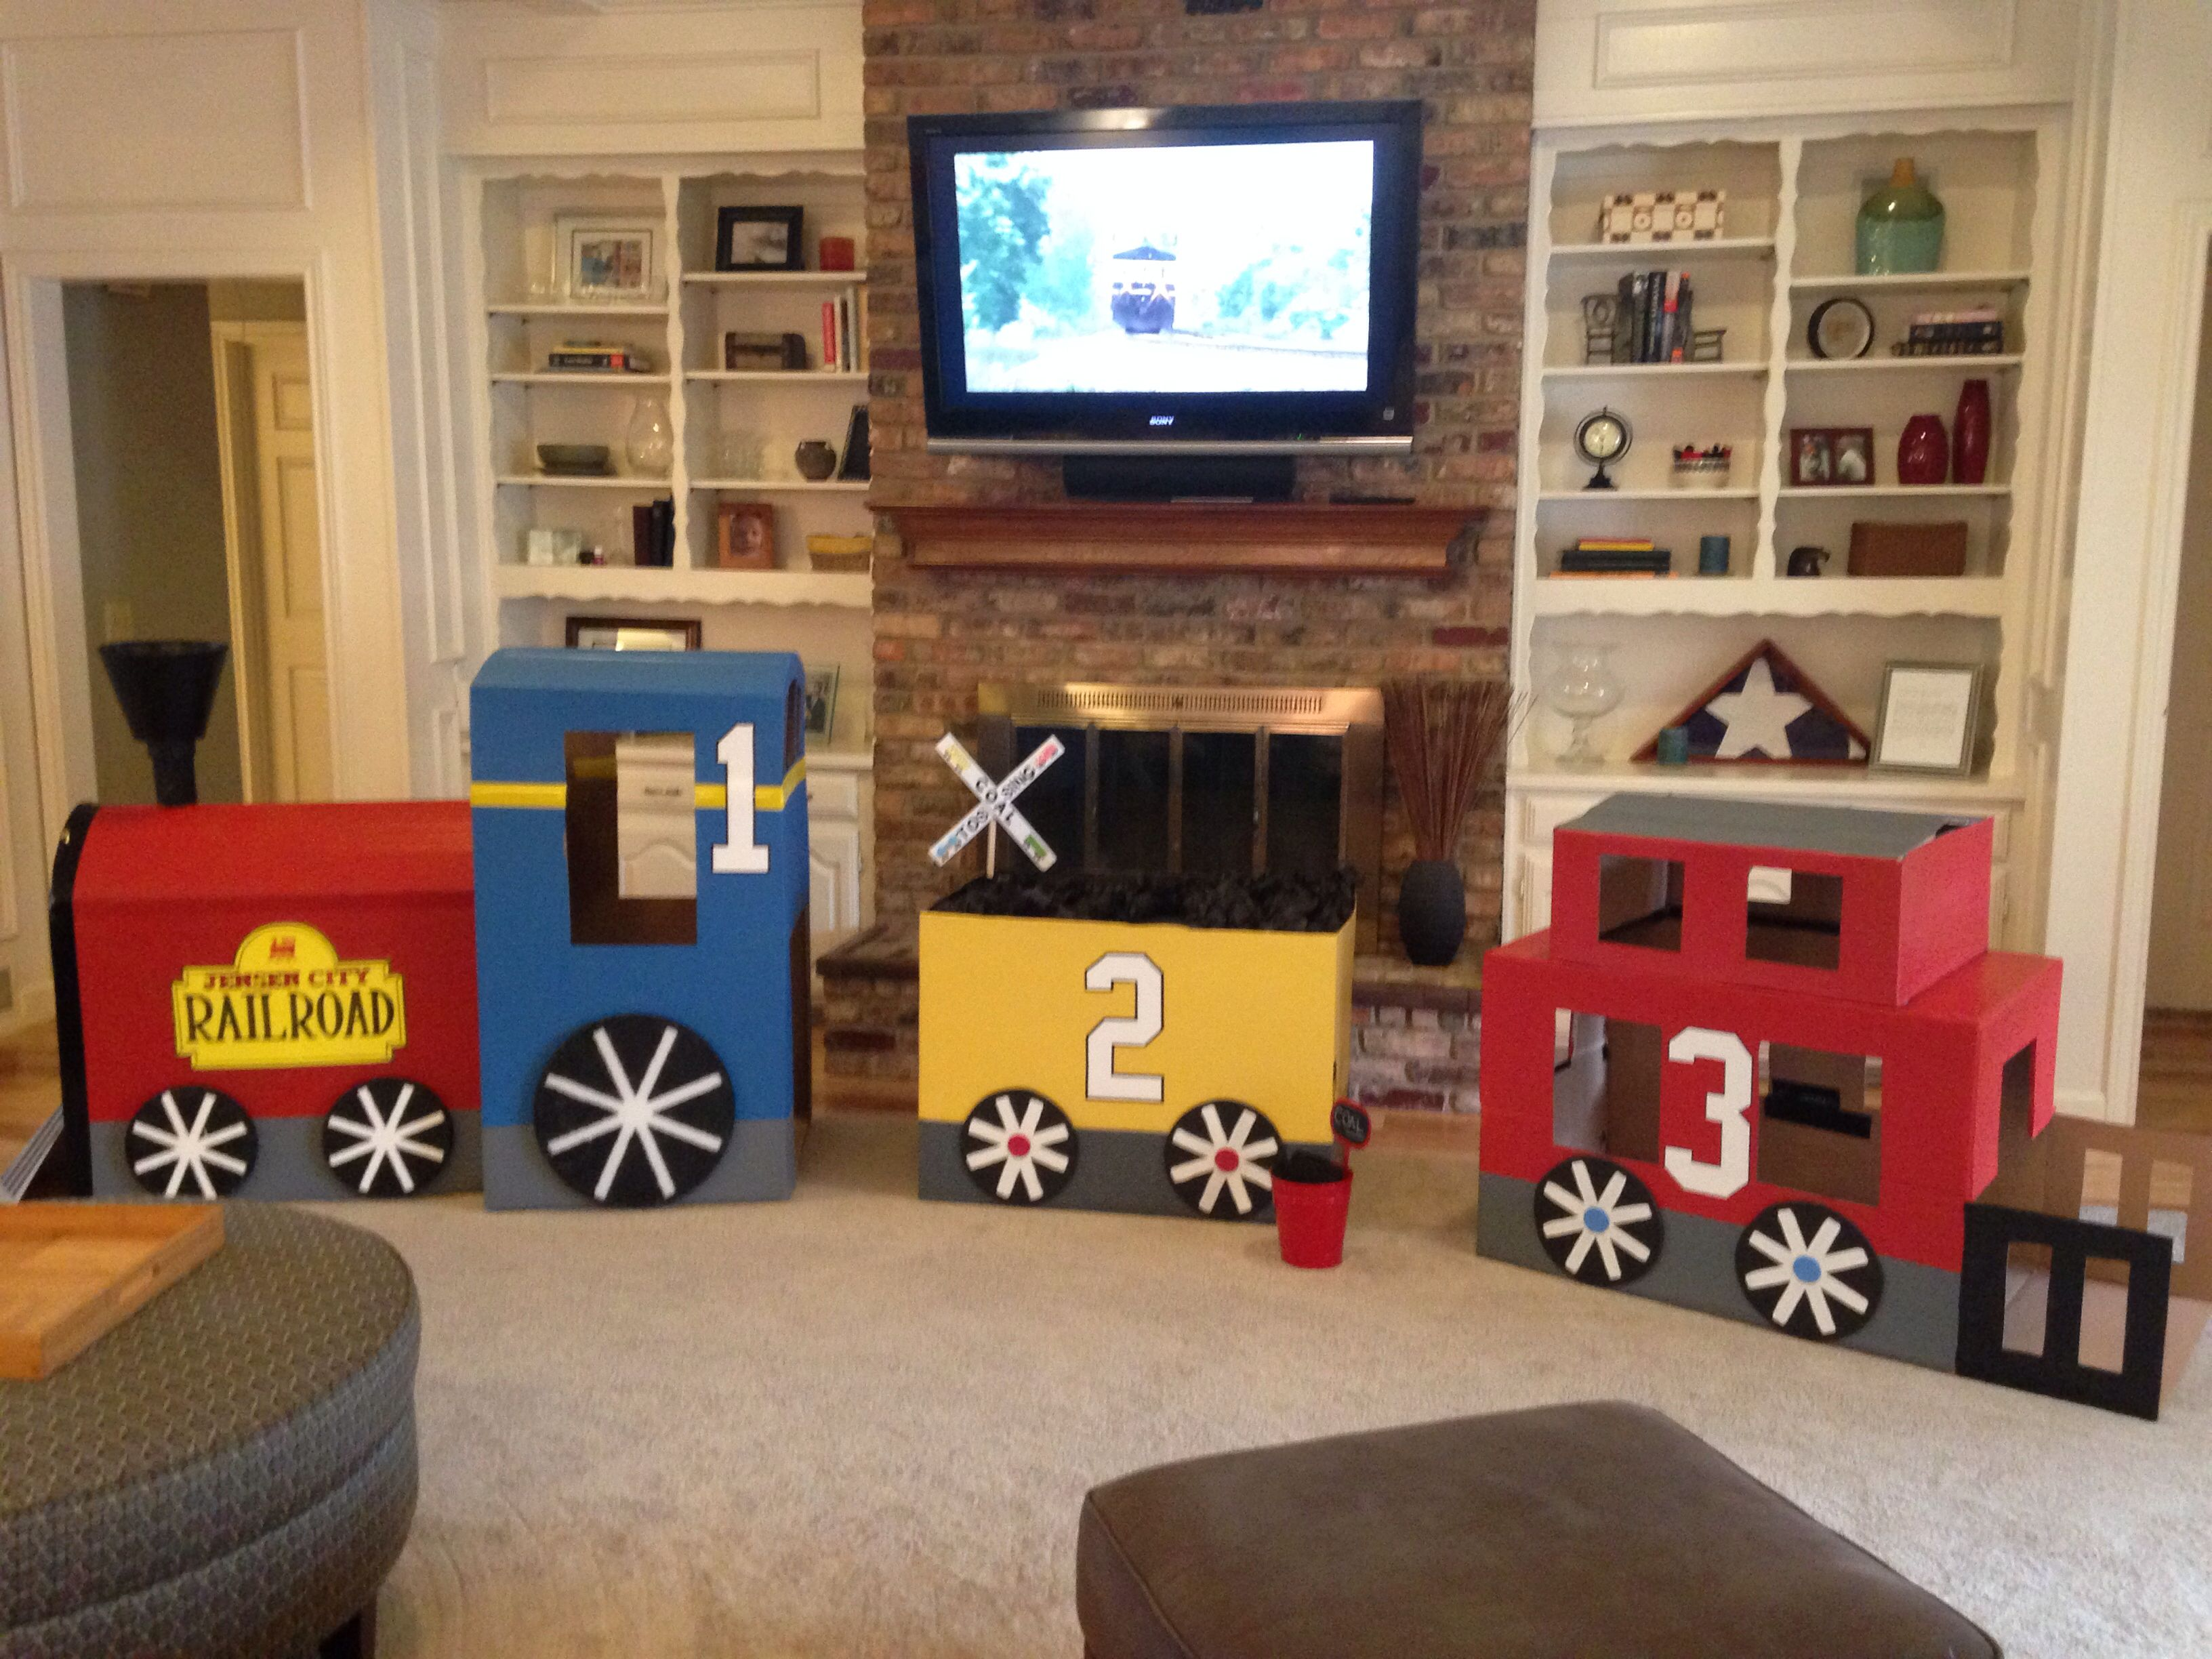 Best 25 Cardboard train ideas on Pinterest